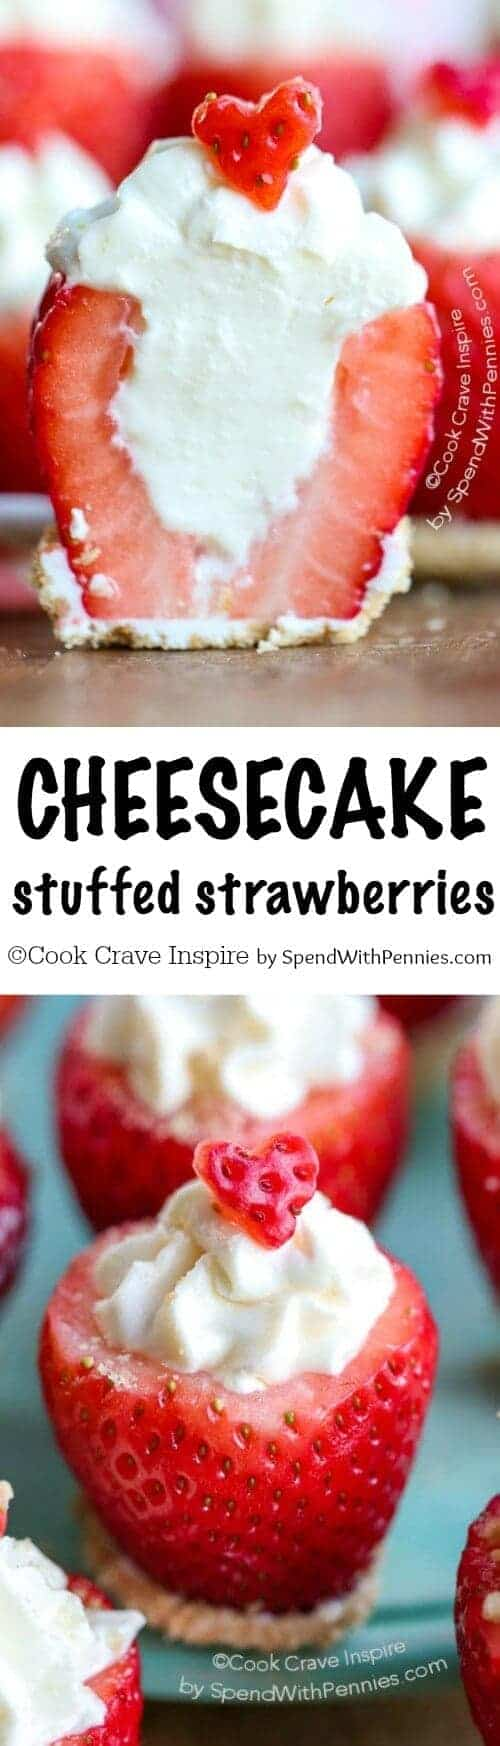 Cheesecake Stuffed Strawberries shown with writing